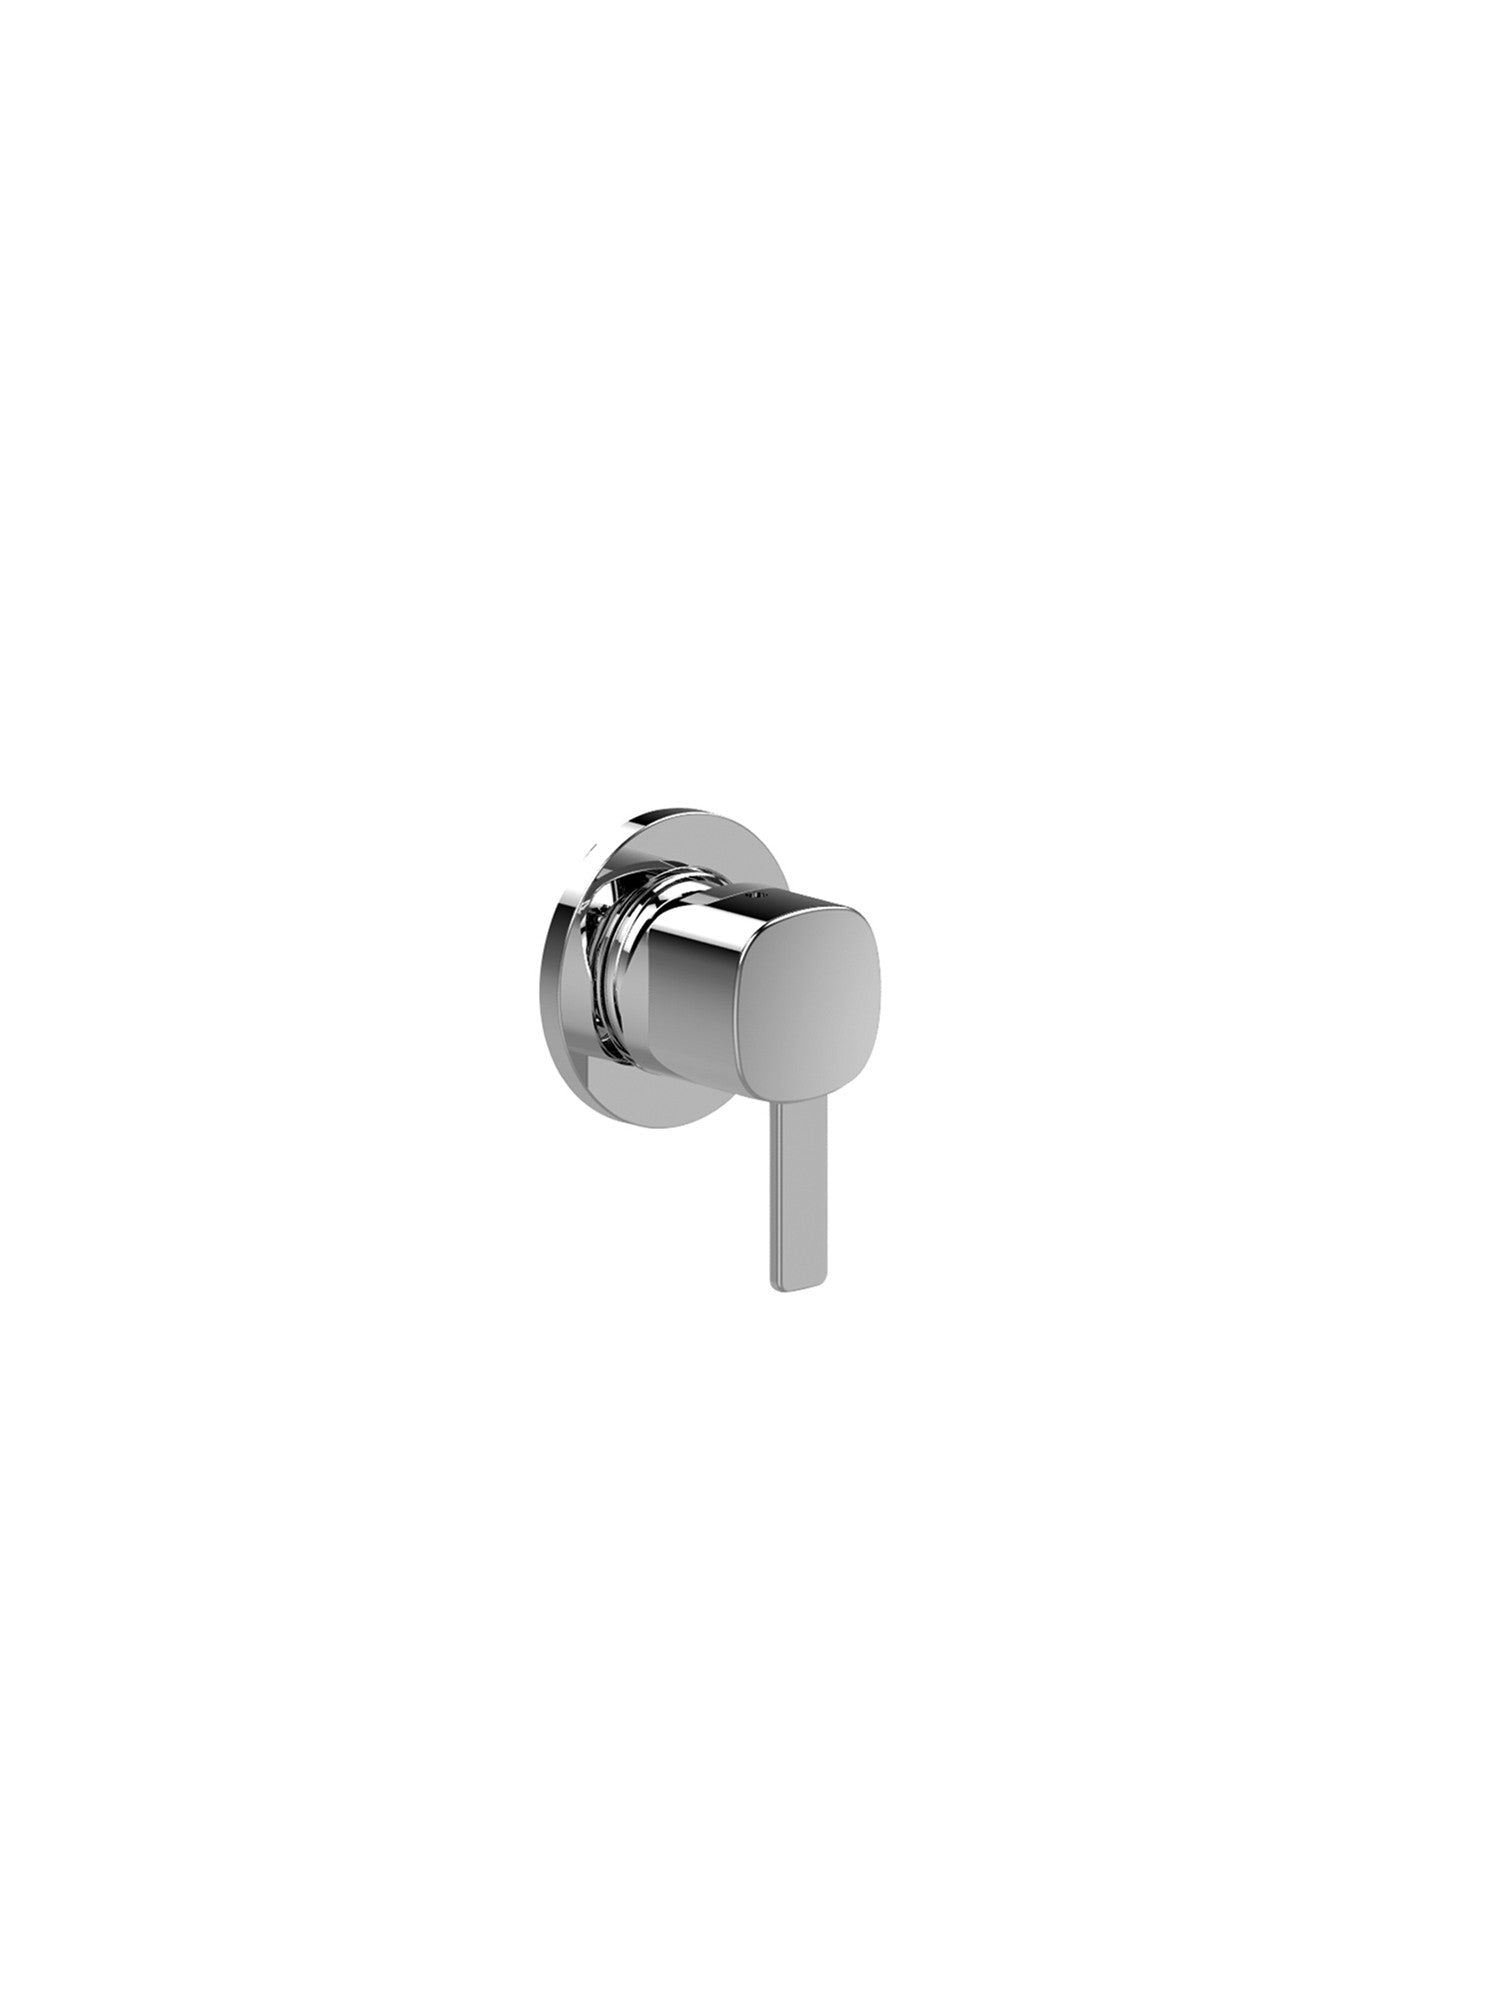 Lamé Conceal Shower Mixer #GPM163B